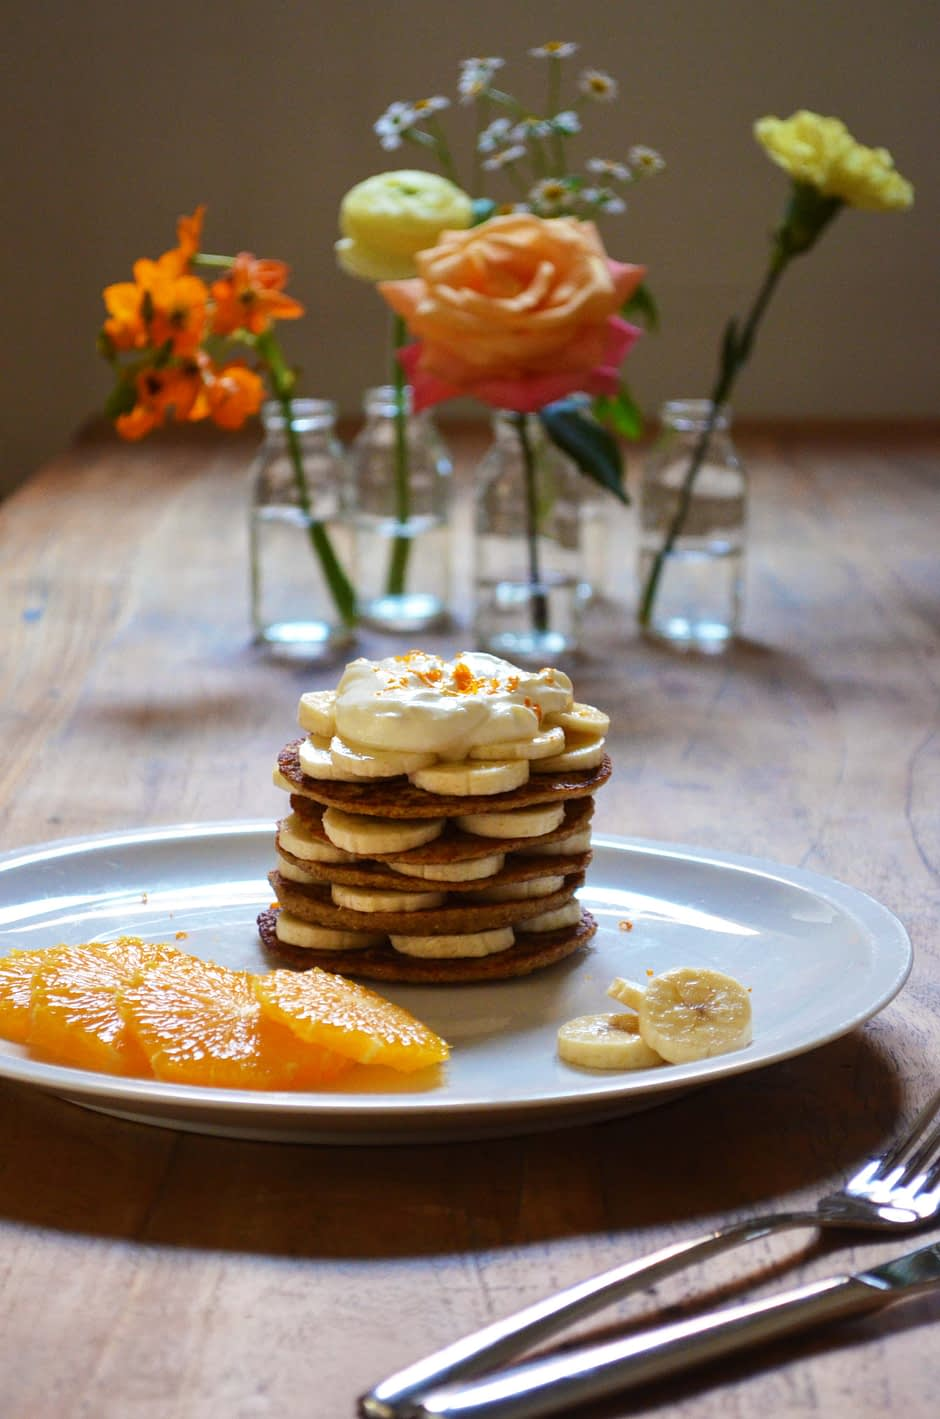 A stack of orange banana pancakes, topped with banana and orange slices. Recipe and photo by That Healthy Kitchen